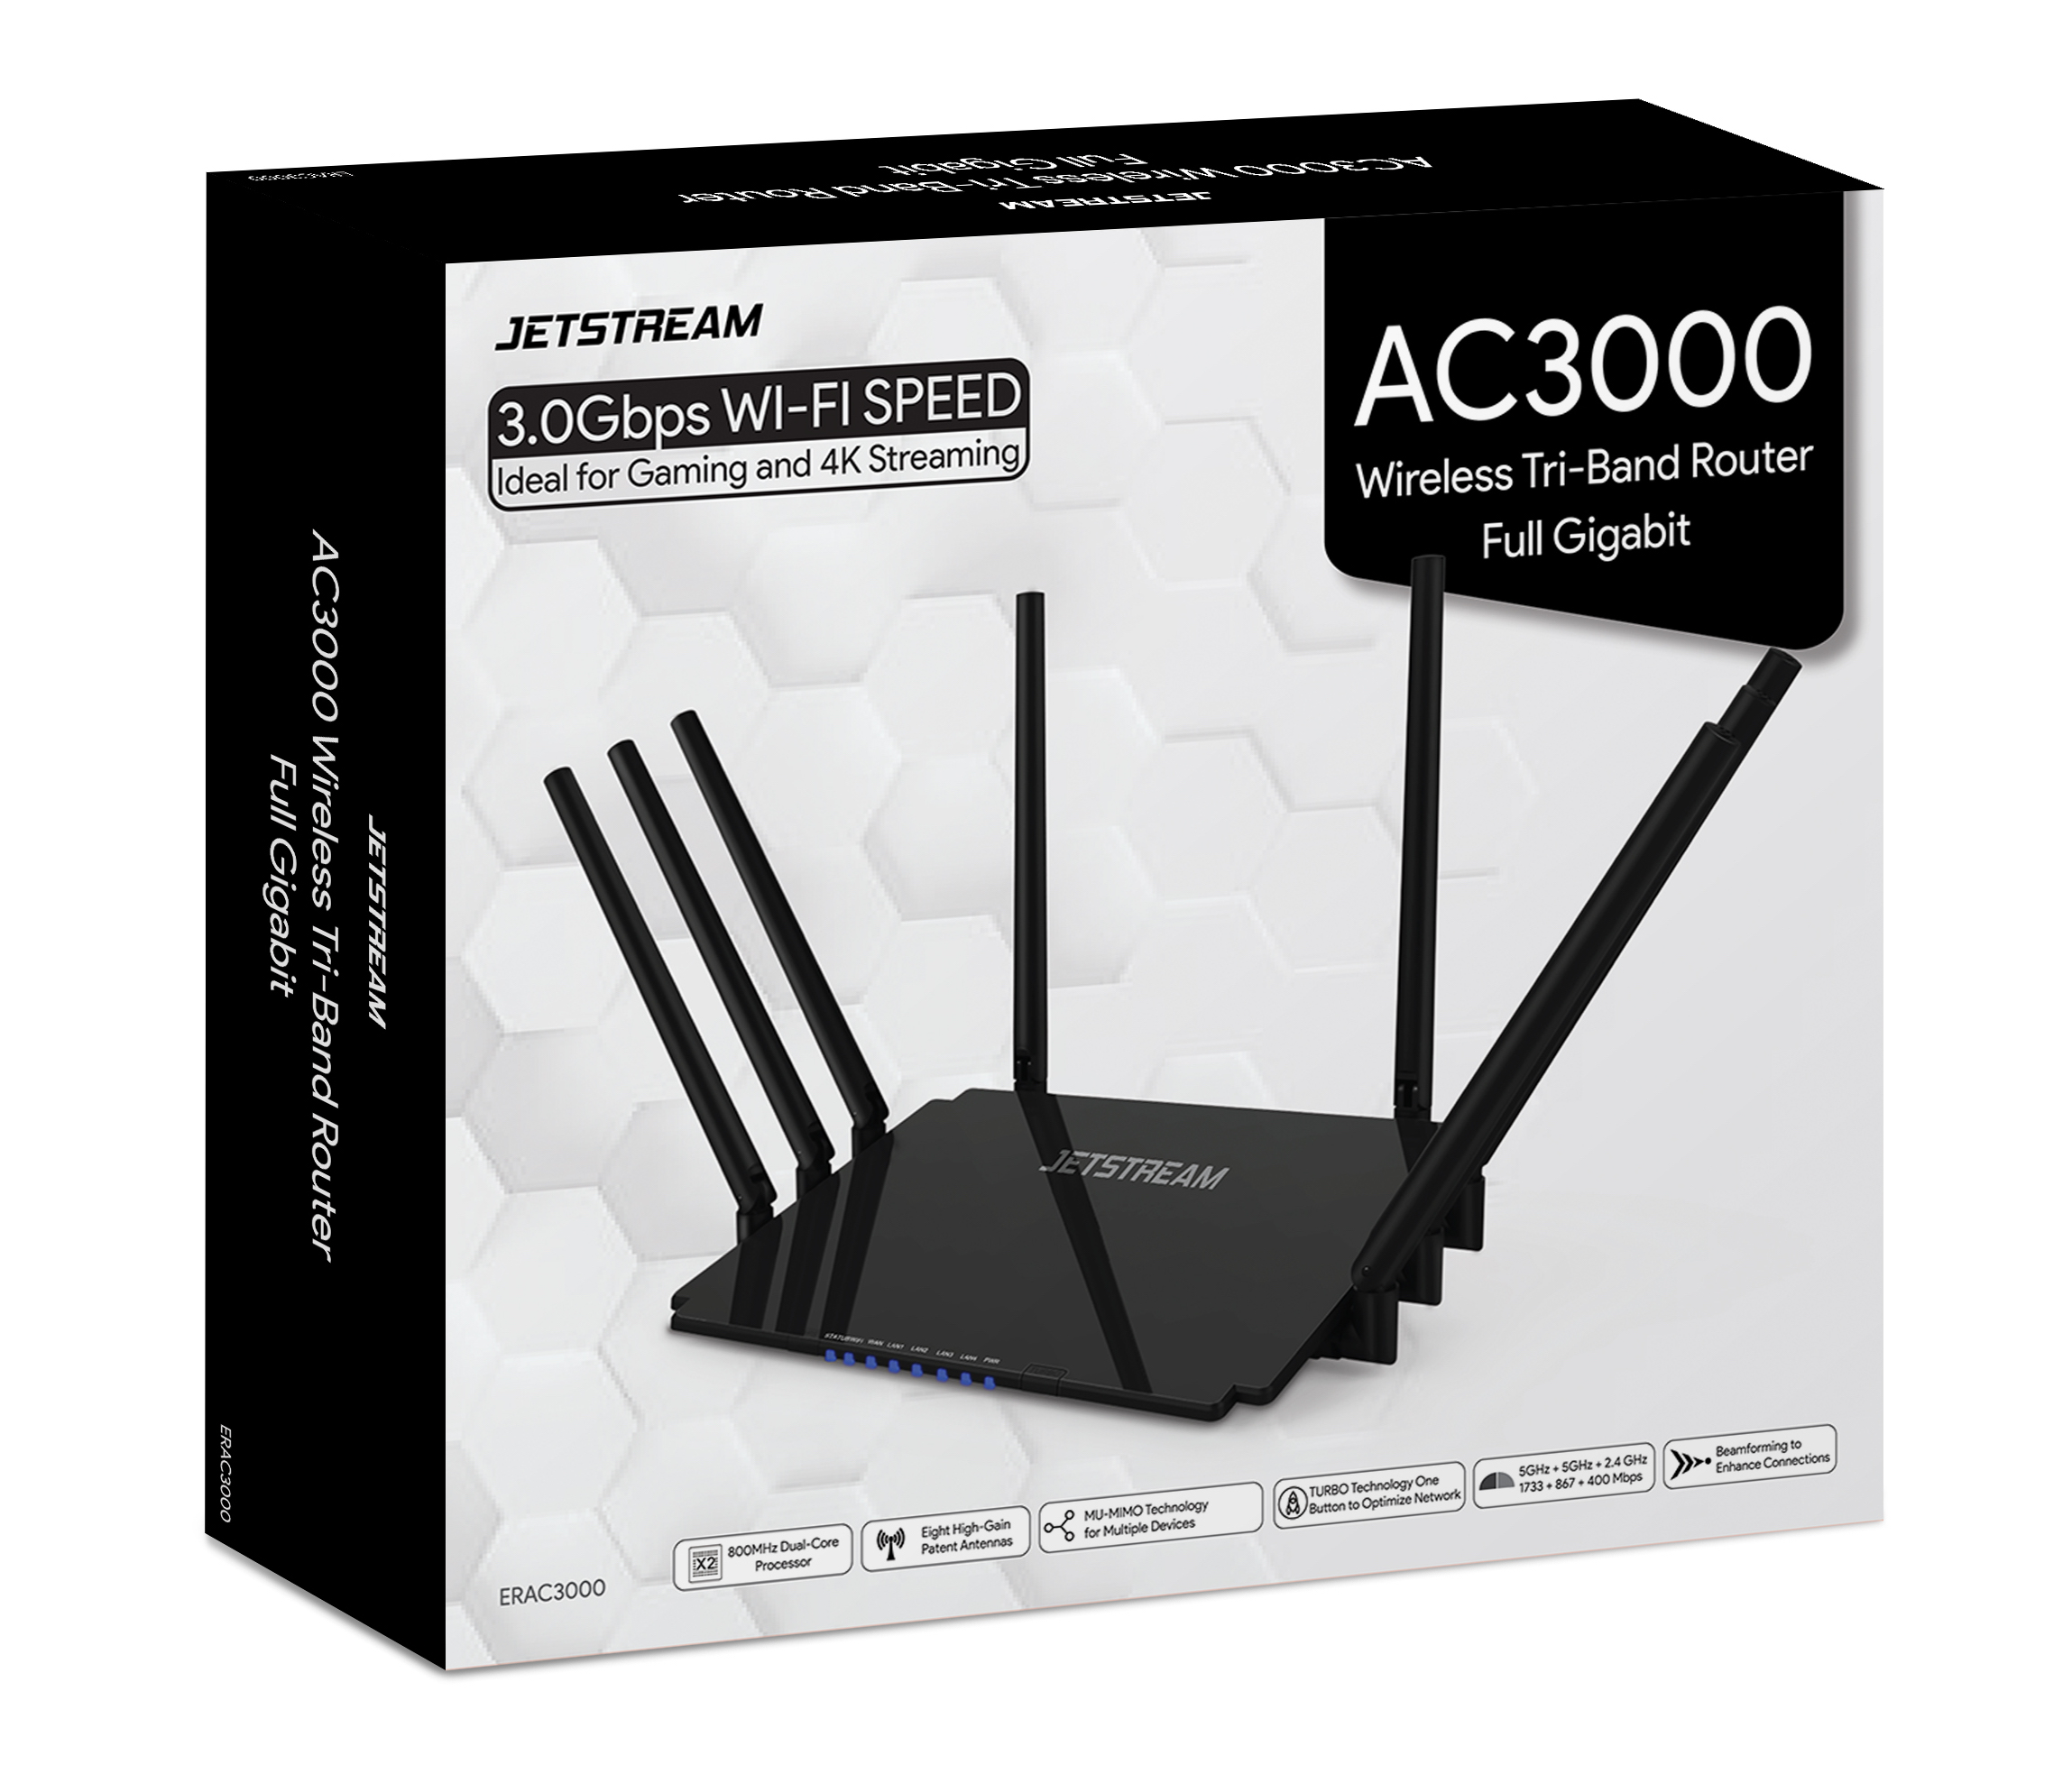 Jetstream AC3000 Tri-Band WiFi Gaming Router with 1GB RAM and 800